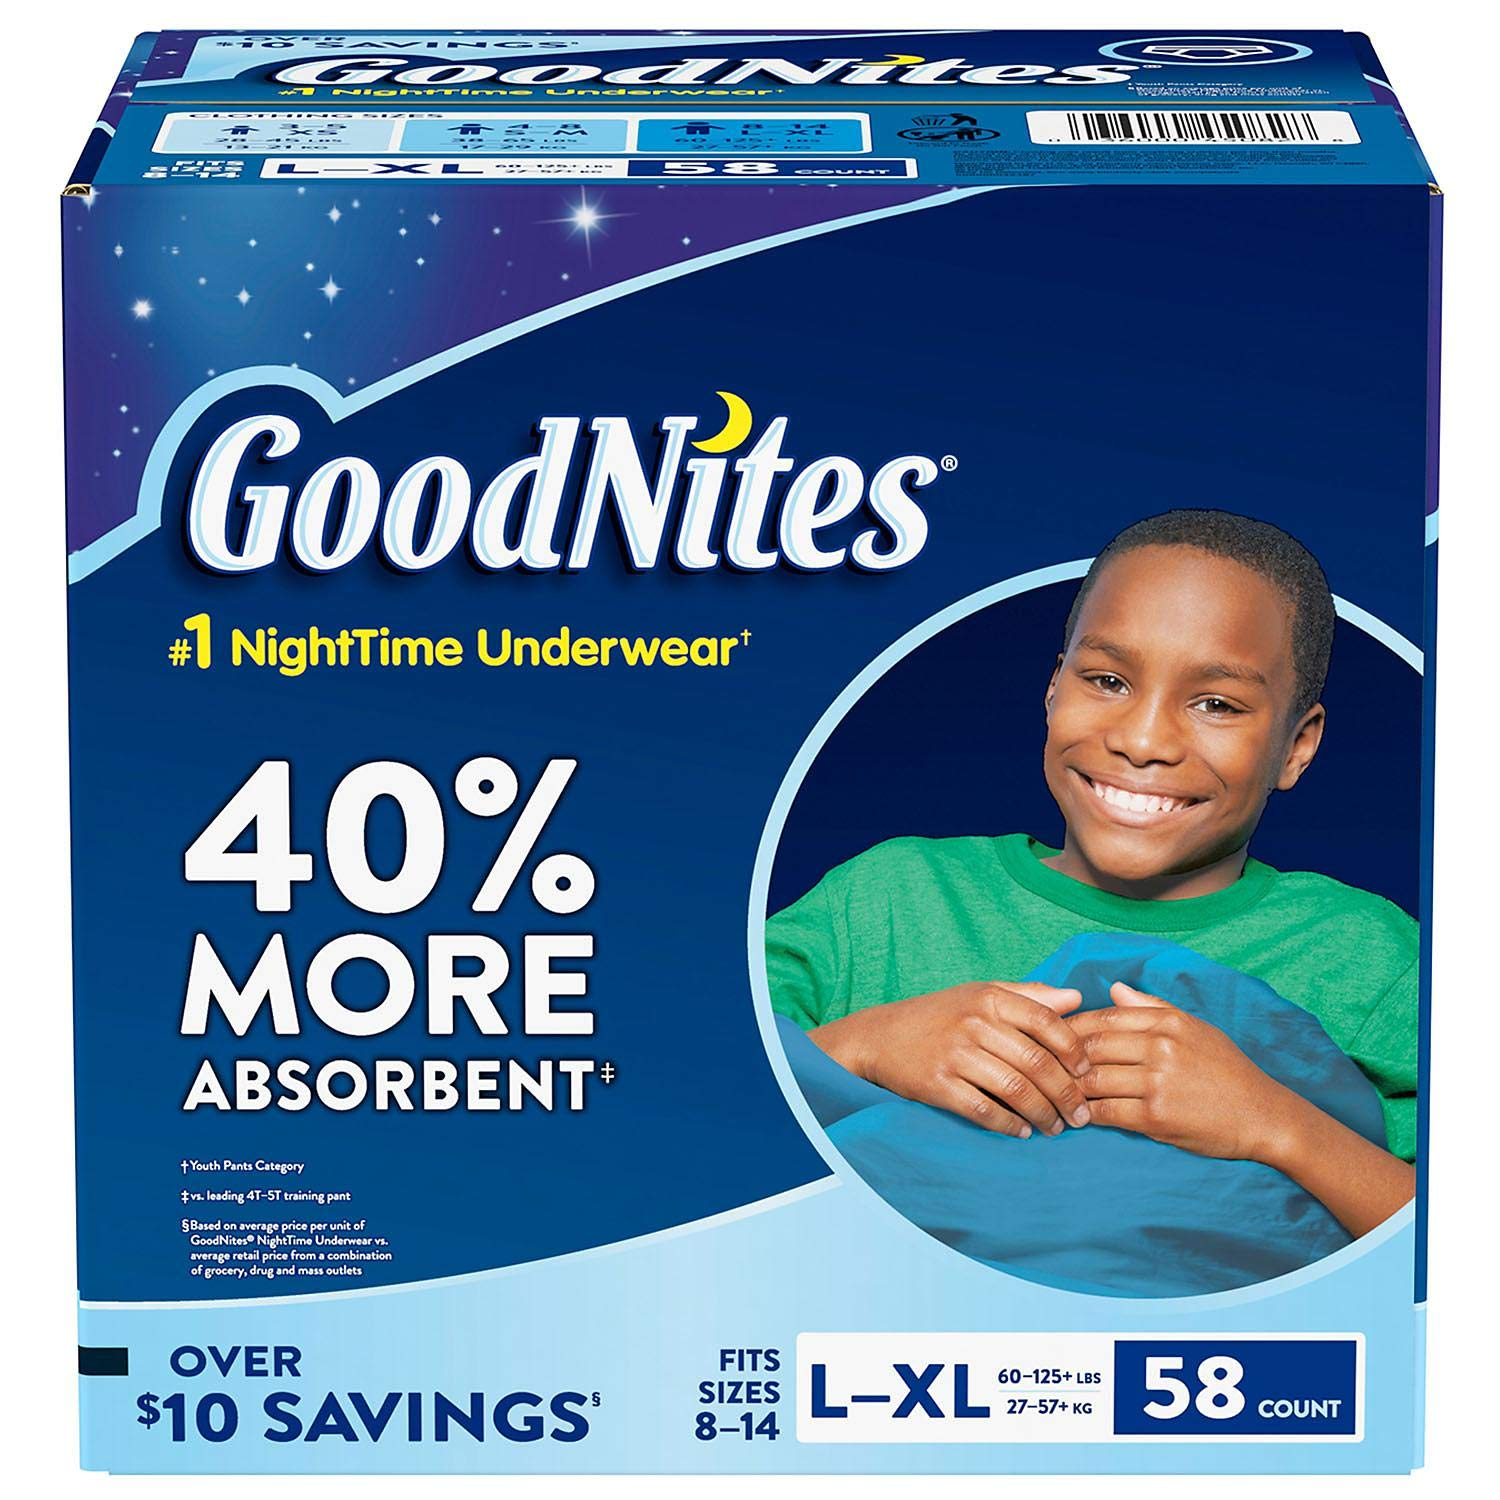 Goodnites Bedwetting Solutions Underwear for Boys 60-125lbs